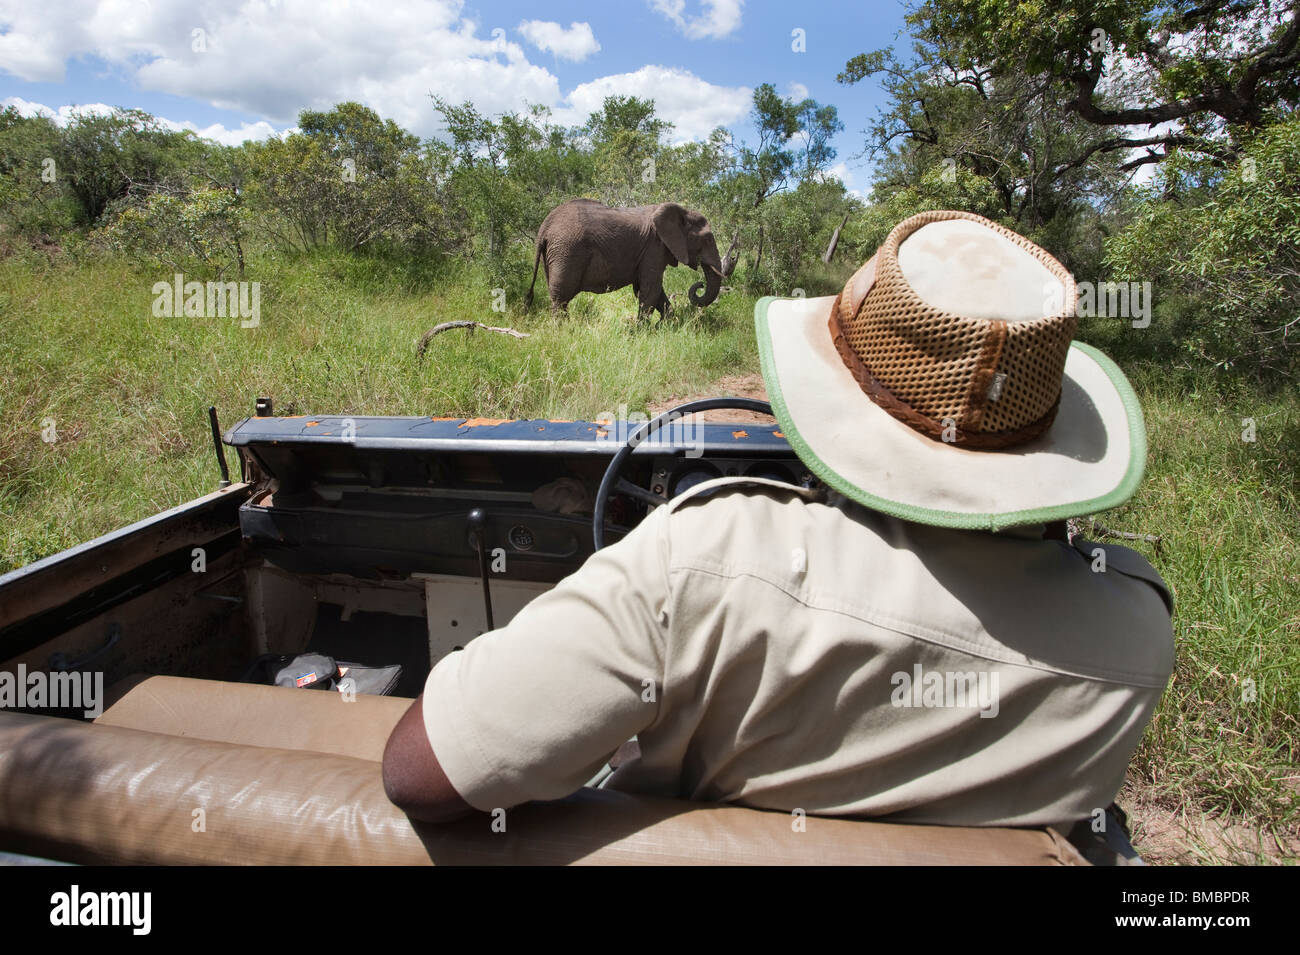 Game guide on safari, Mkhaya game reserve, Swaziland, Africa - Stock Image